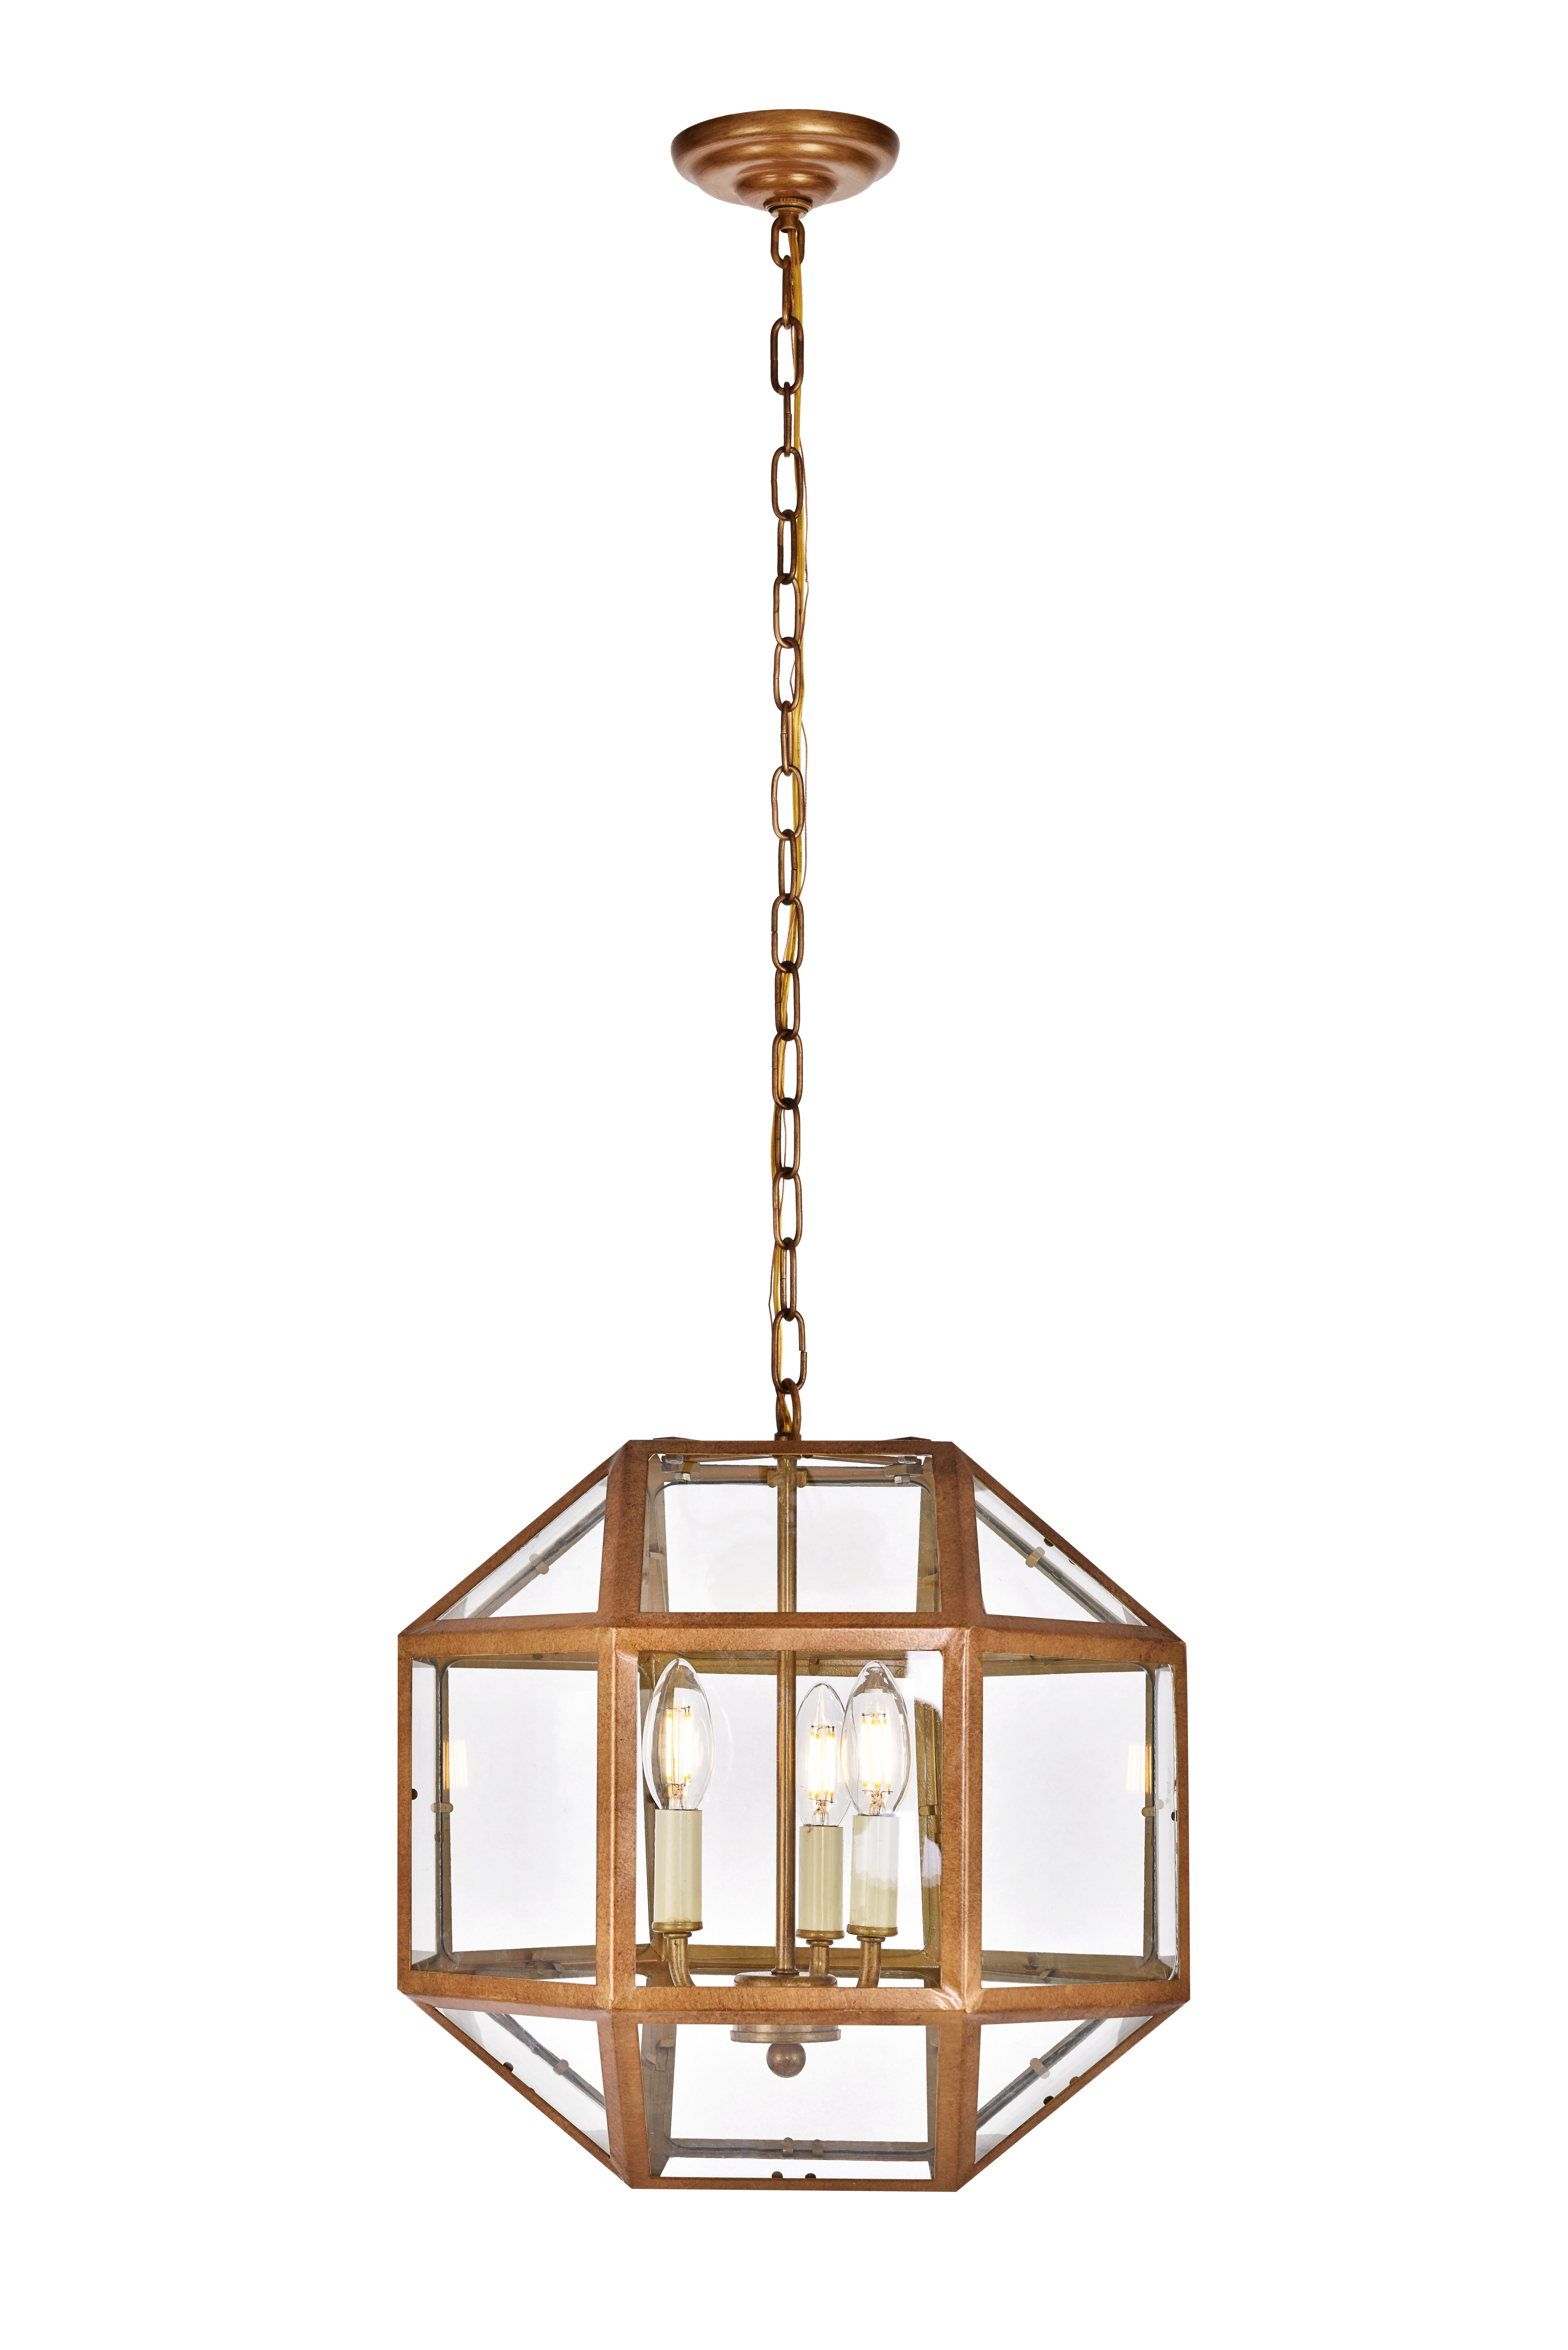 Modern Geometric Chandeliers | Allmodern with regard to Cavanagh 4-Light Geometric Chandeliers (Image 22 of 30)